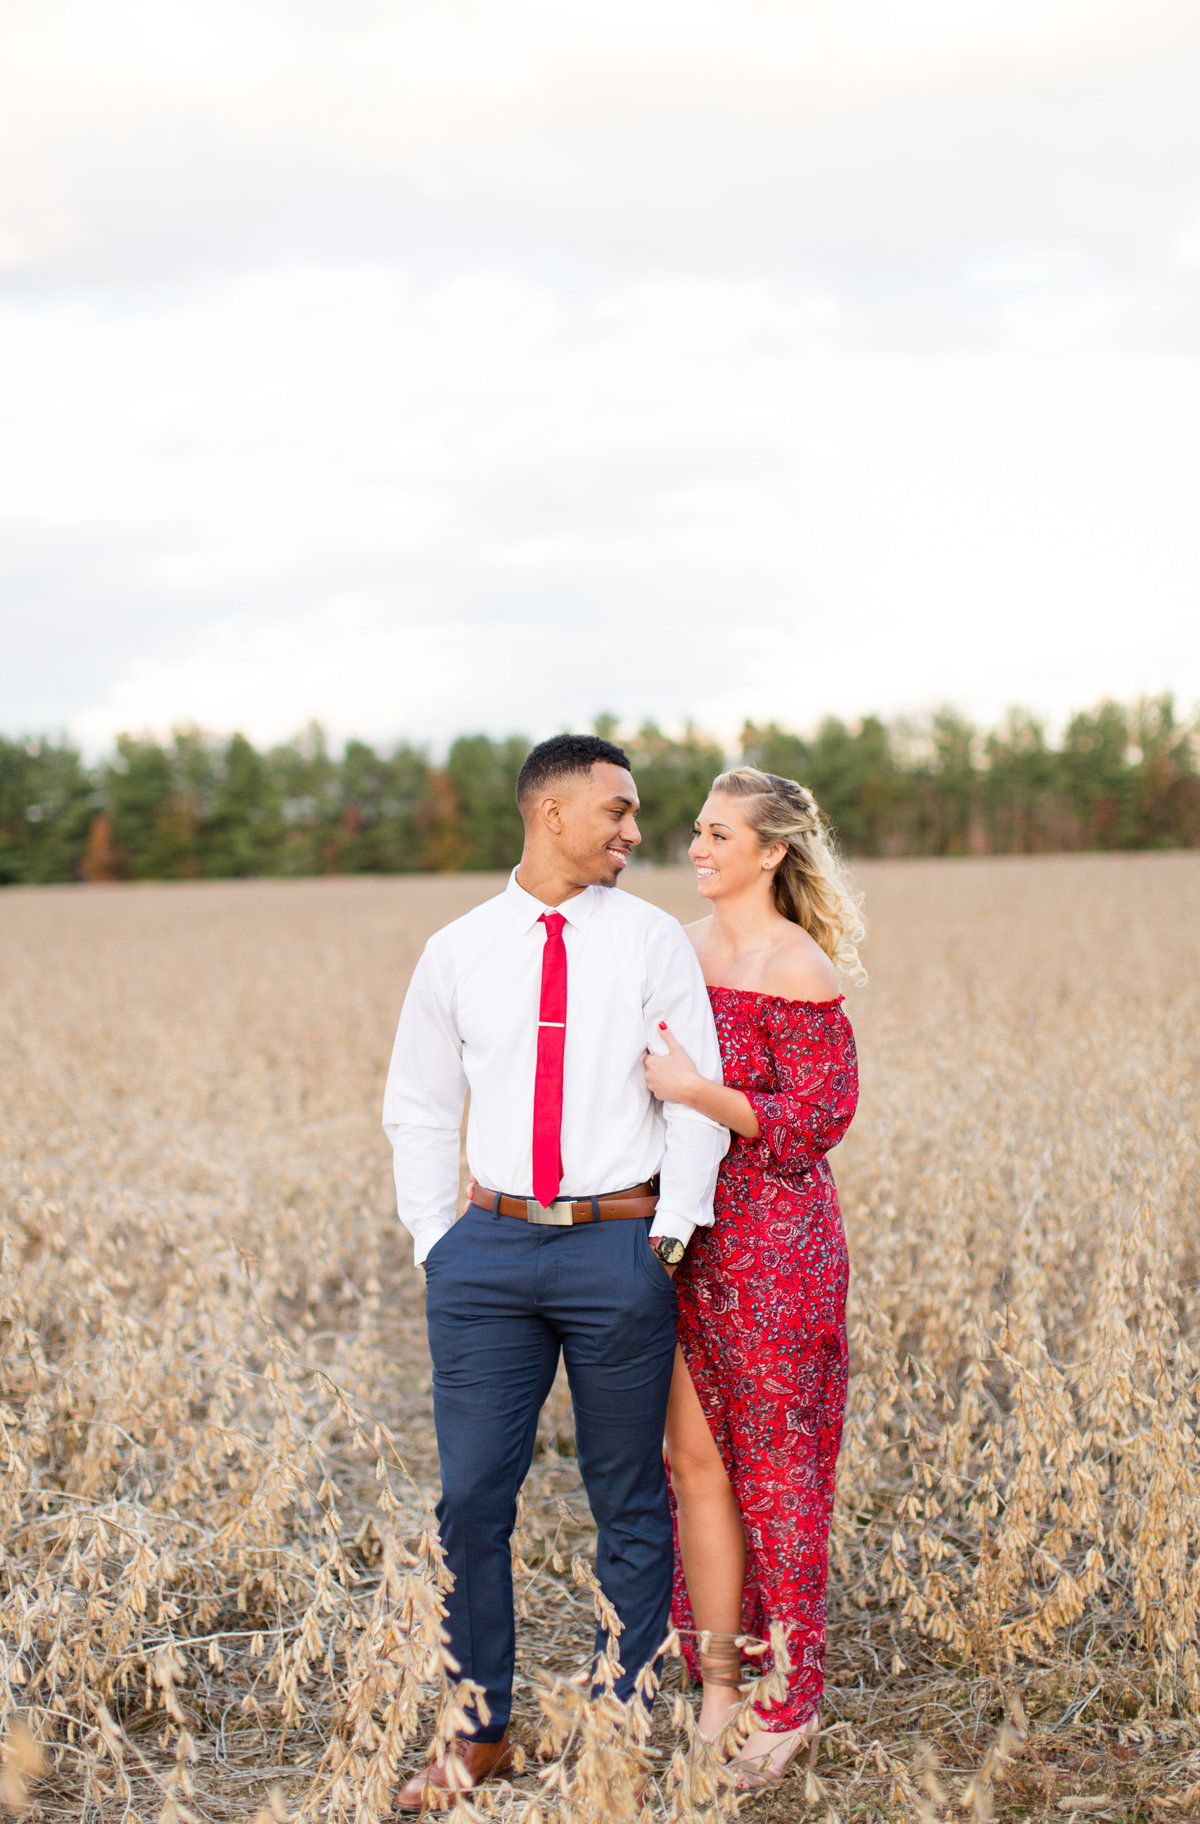 Fredericksburg, Virginia engagement photography by Marie Hamilton Photography